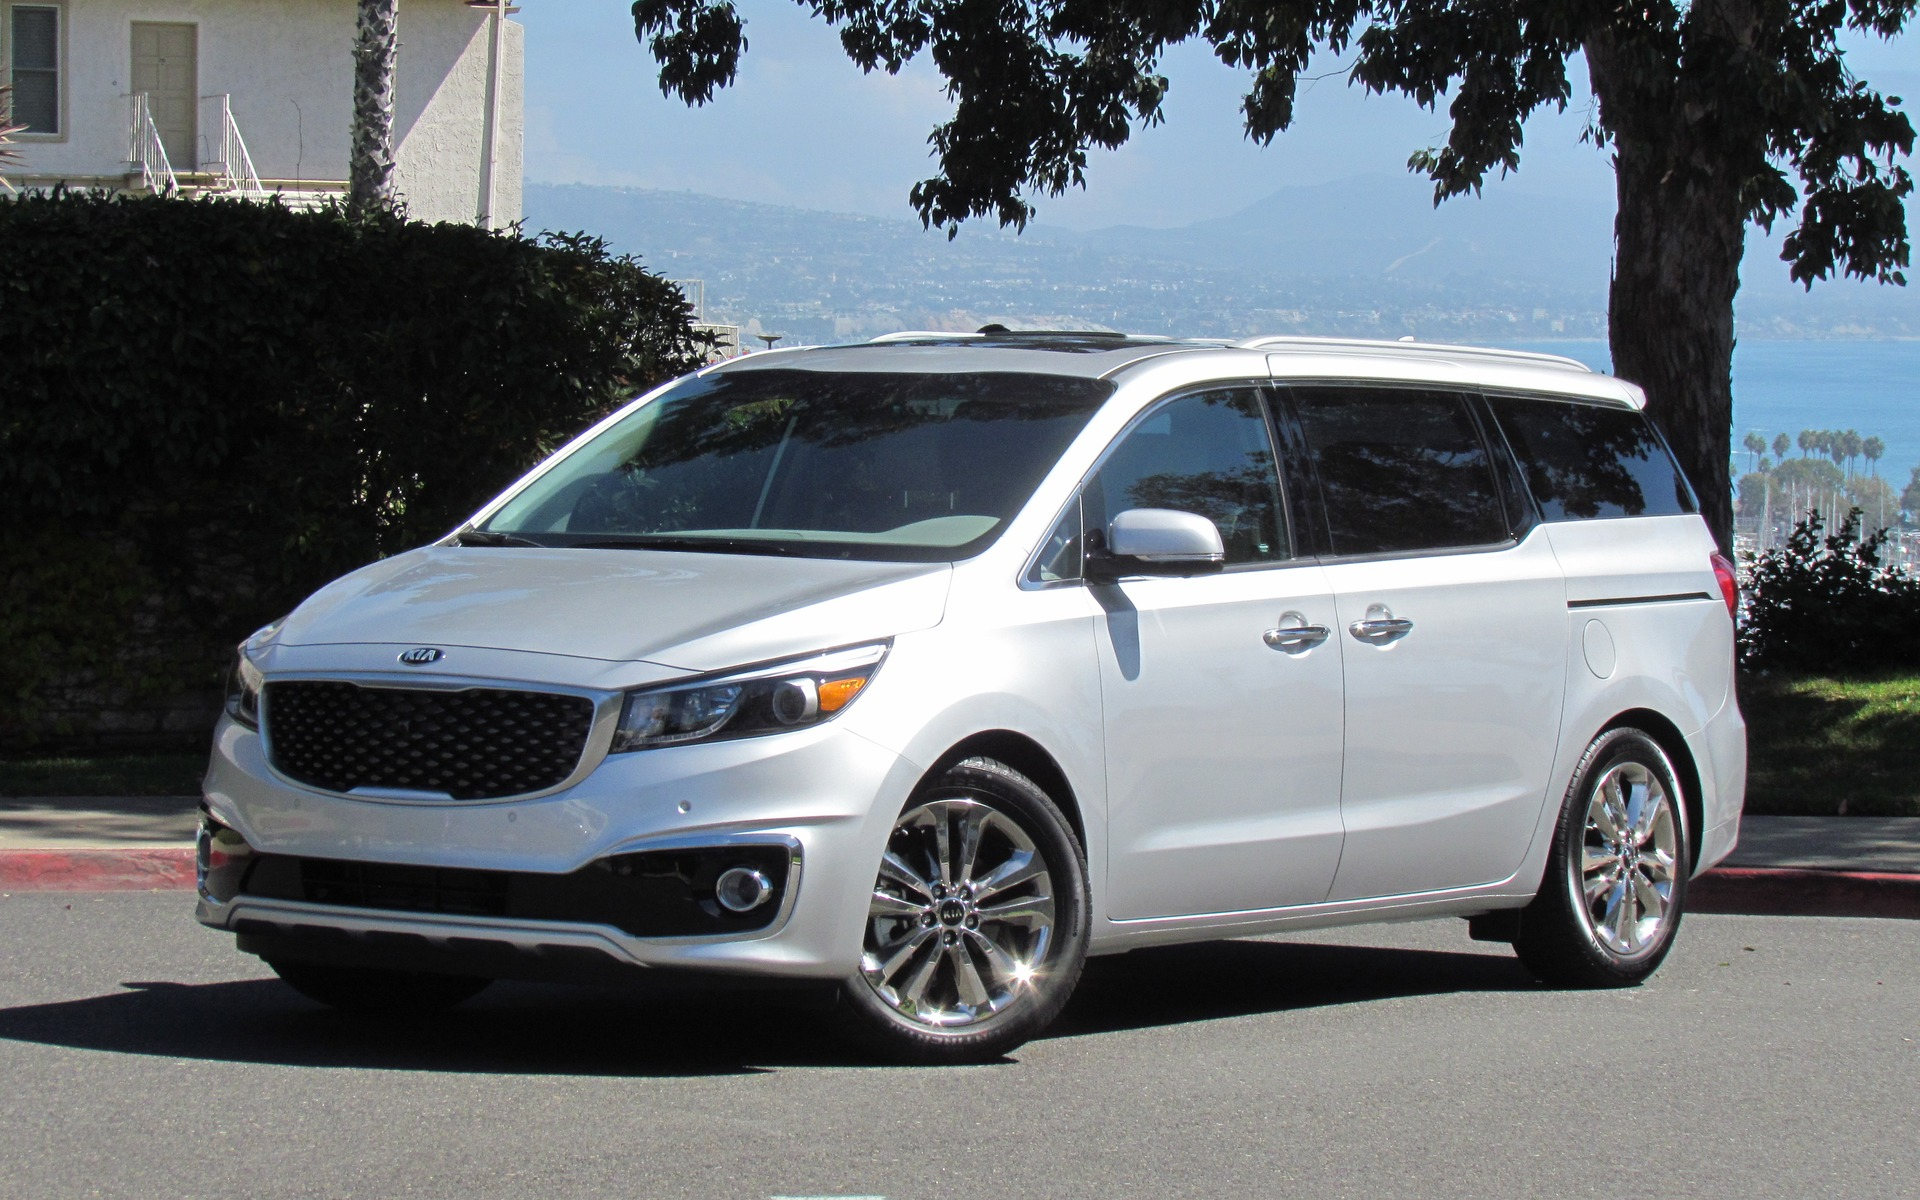 2018 Kia Sedona photo - 3